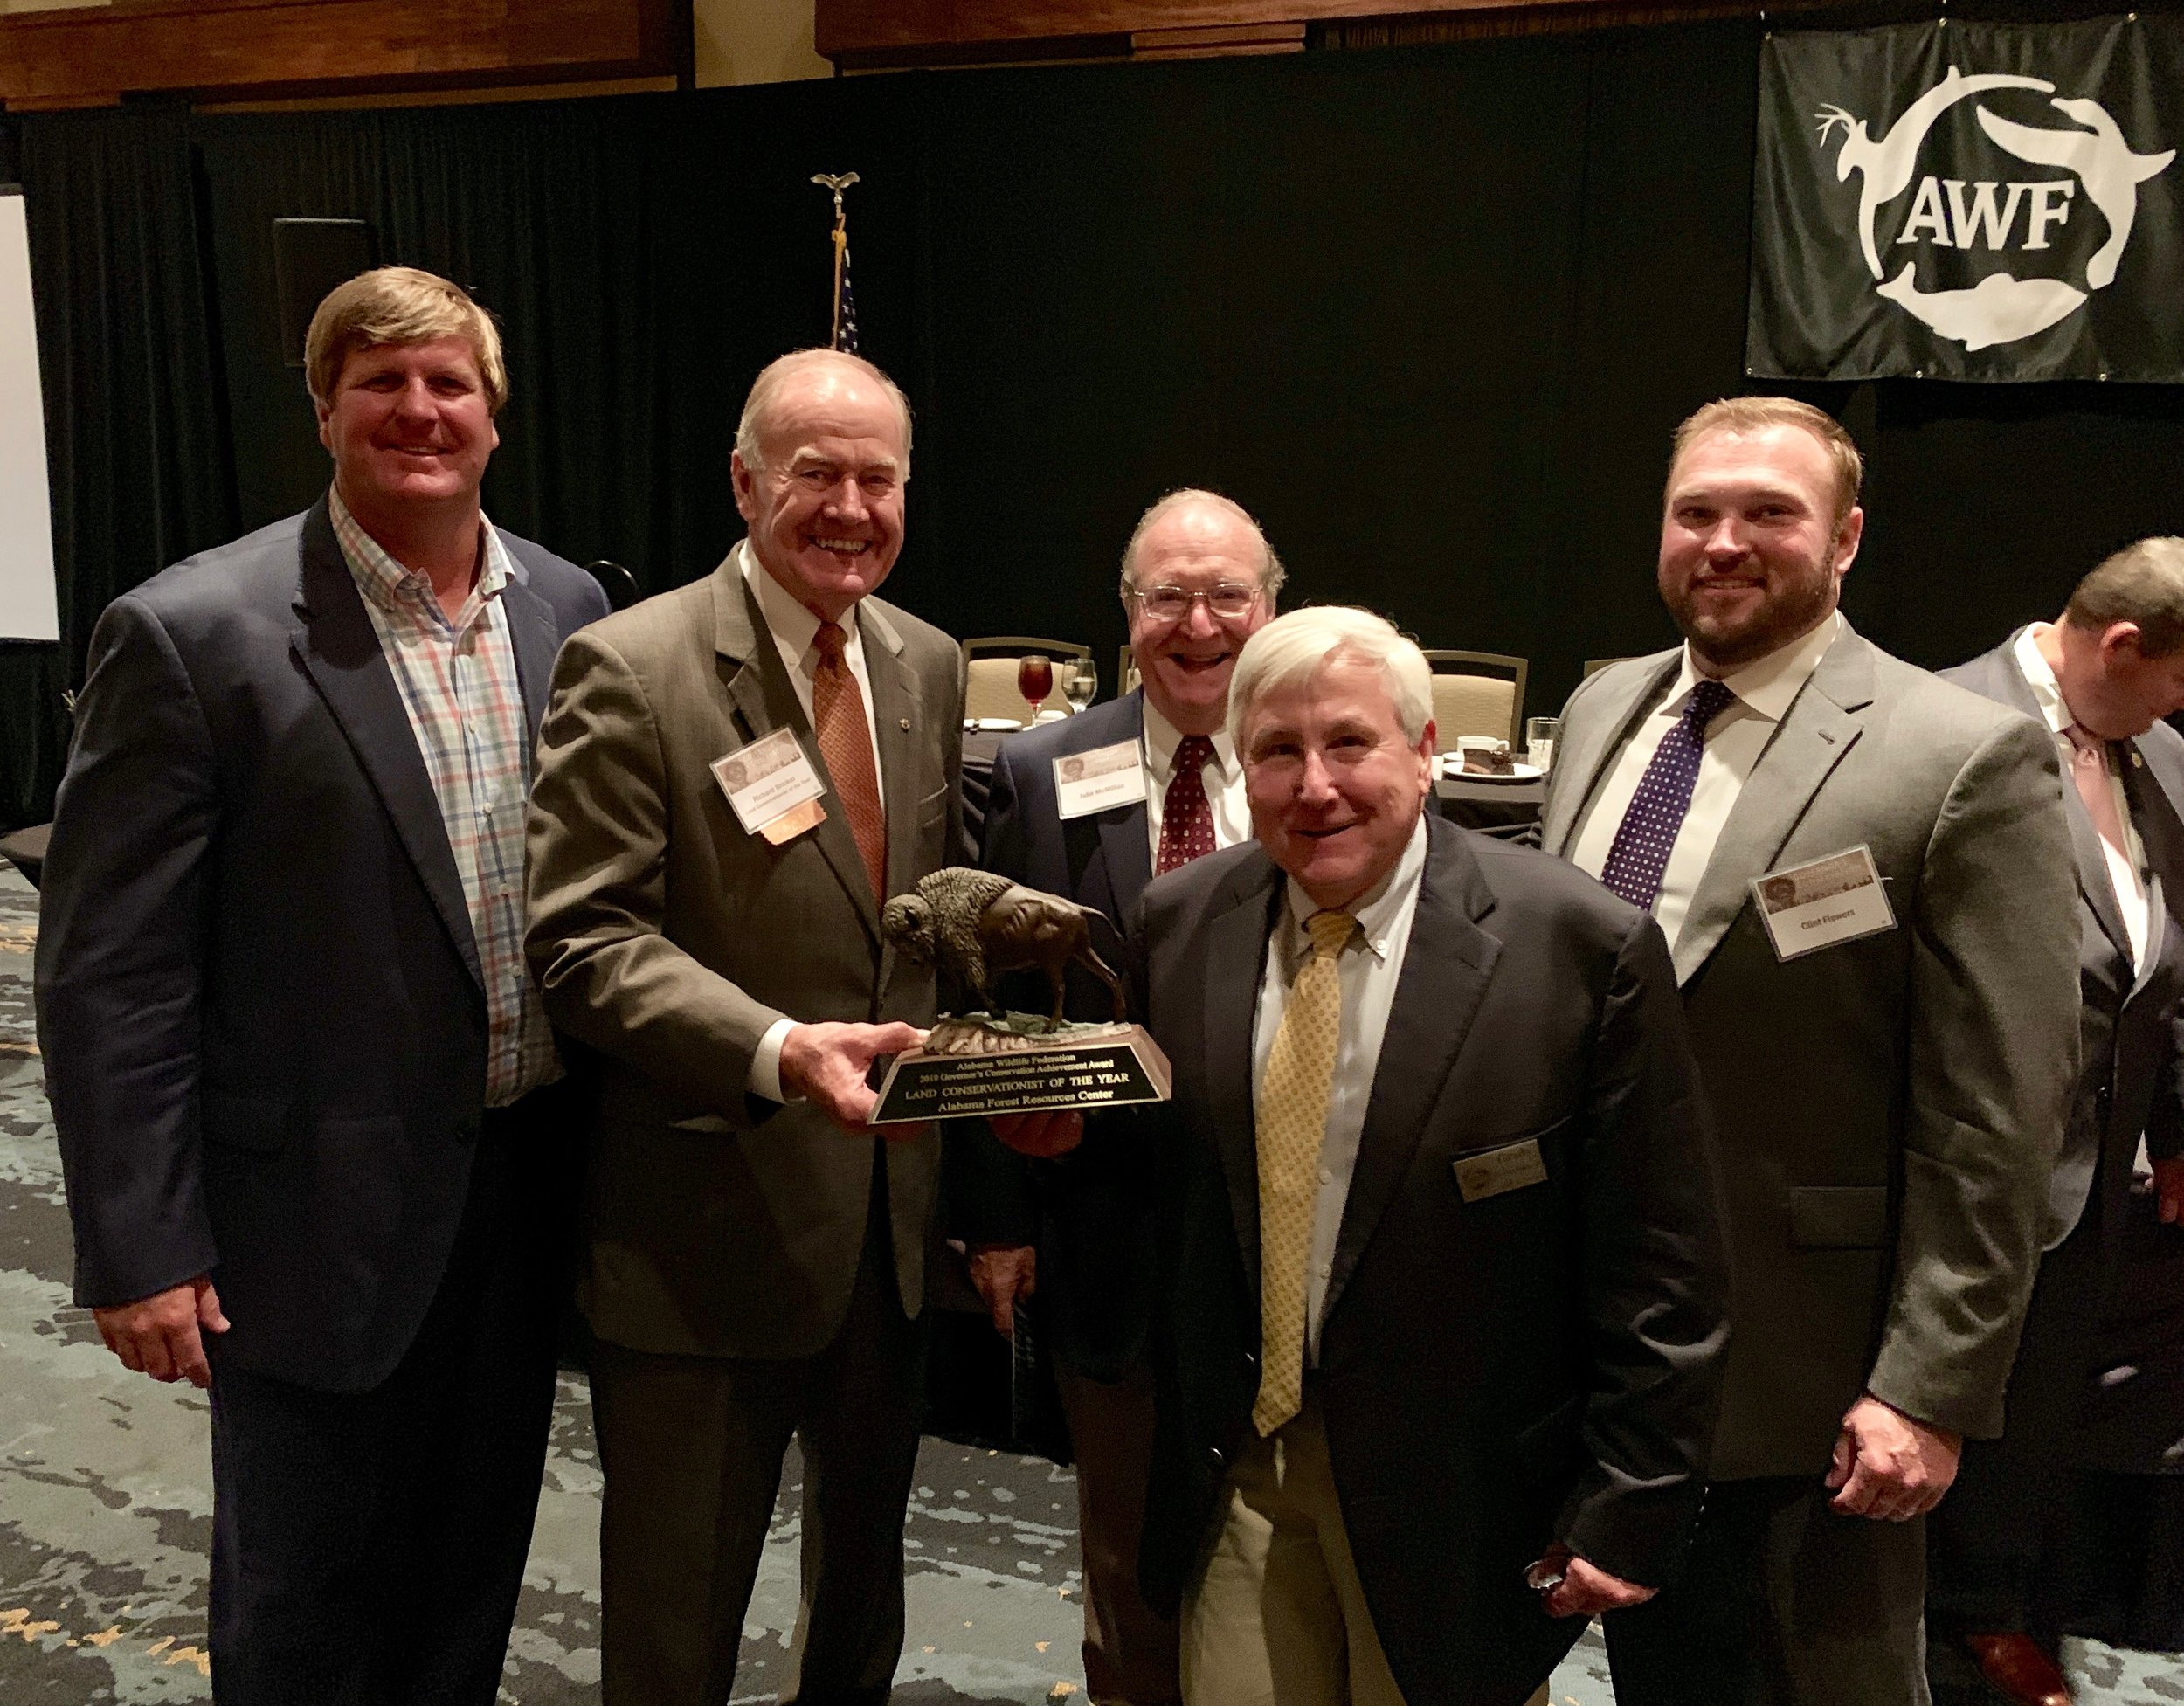 Board members (L-R) Michael Delaney, Dr. Richard Brinker, John McMillan, Grady Hartzog, and Clint Flowers receiving the 2019 Alabama Wildlife Federation's Governor's Conservation Achievement Award to AFRC for Land Conservationist of the Year